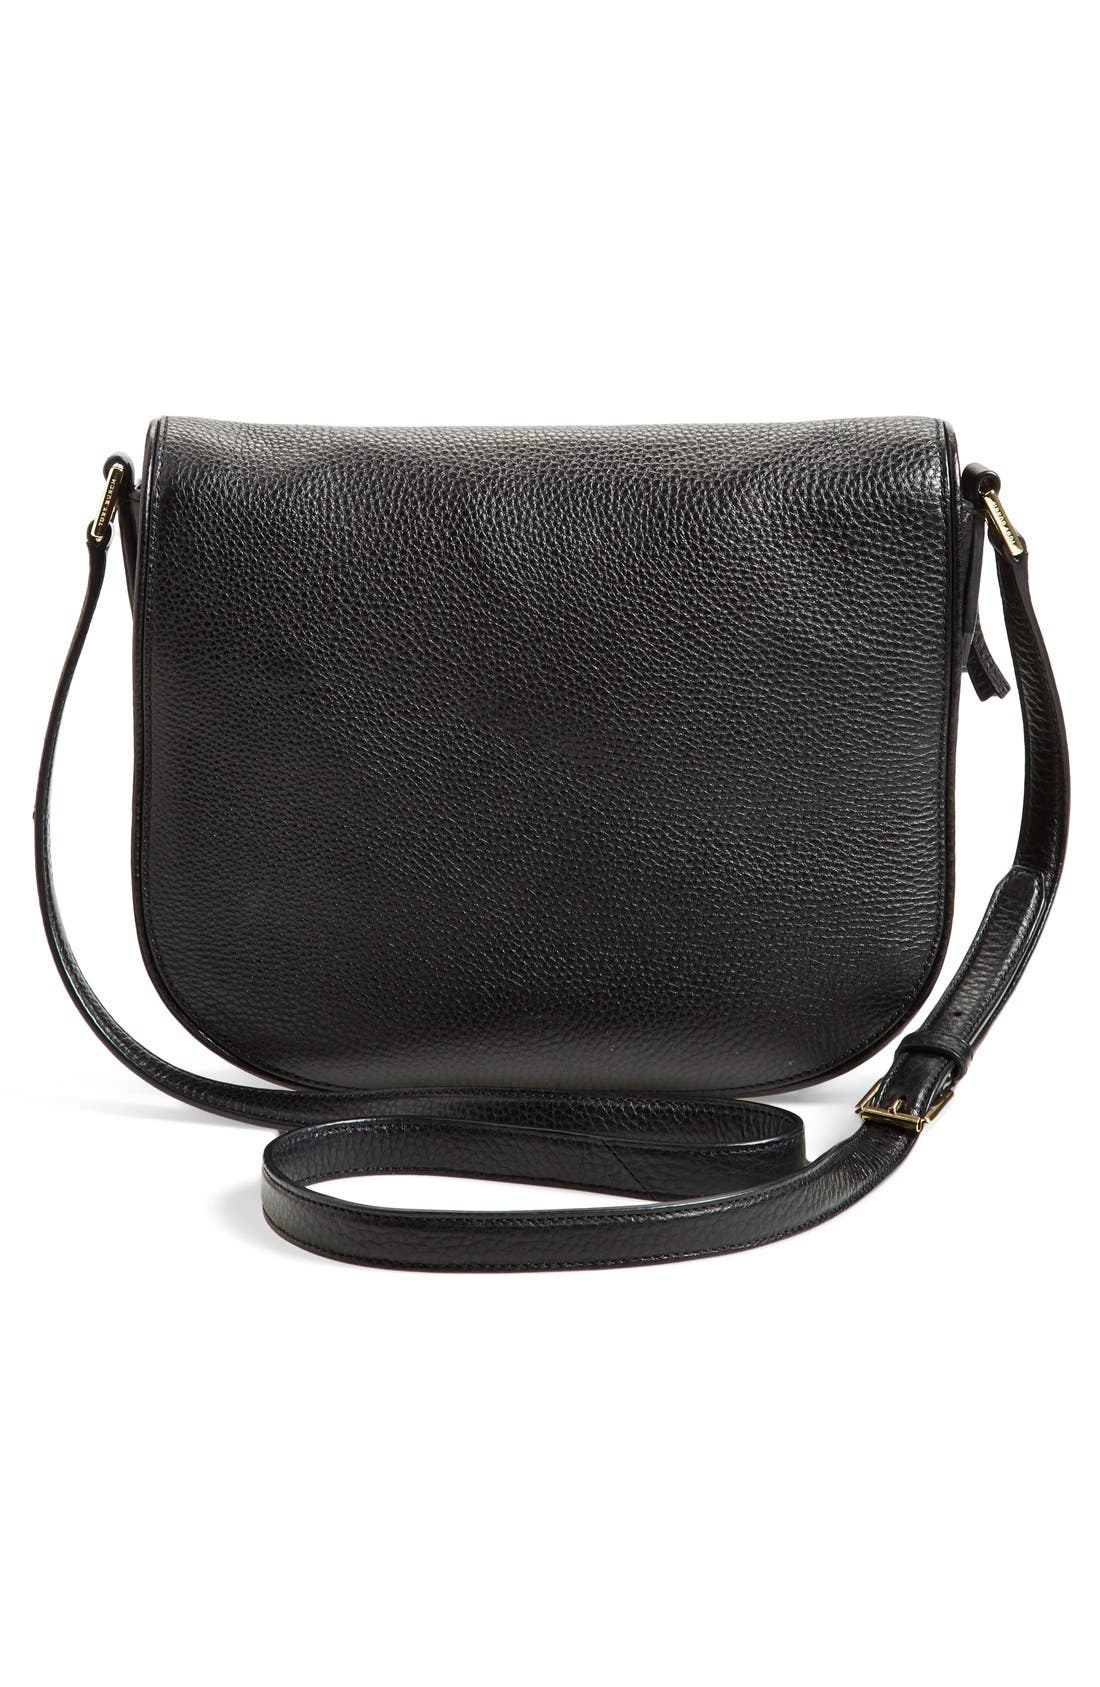 'Robinson' Pebbled Leather Shoulder Bag,                             Alternate thumbnail 2, color,                             001